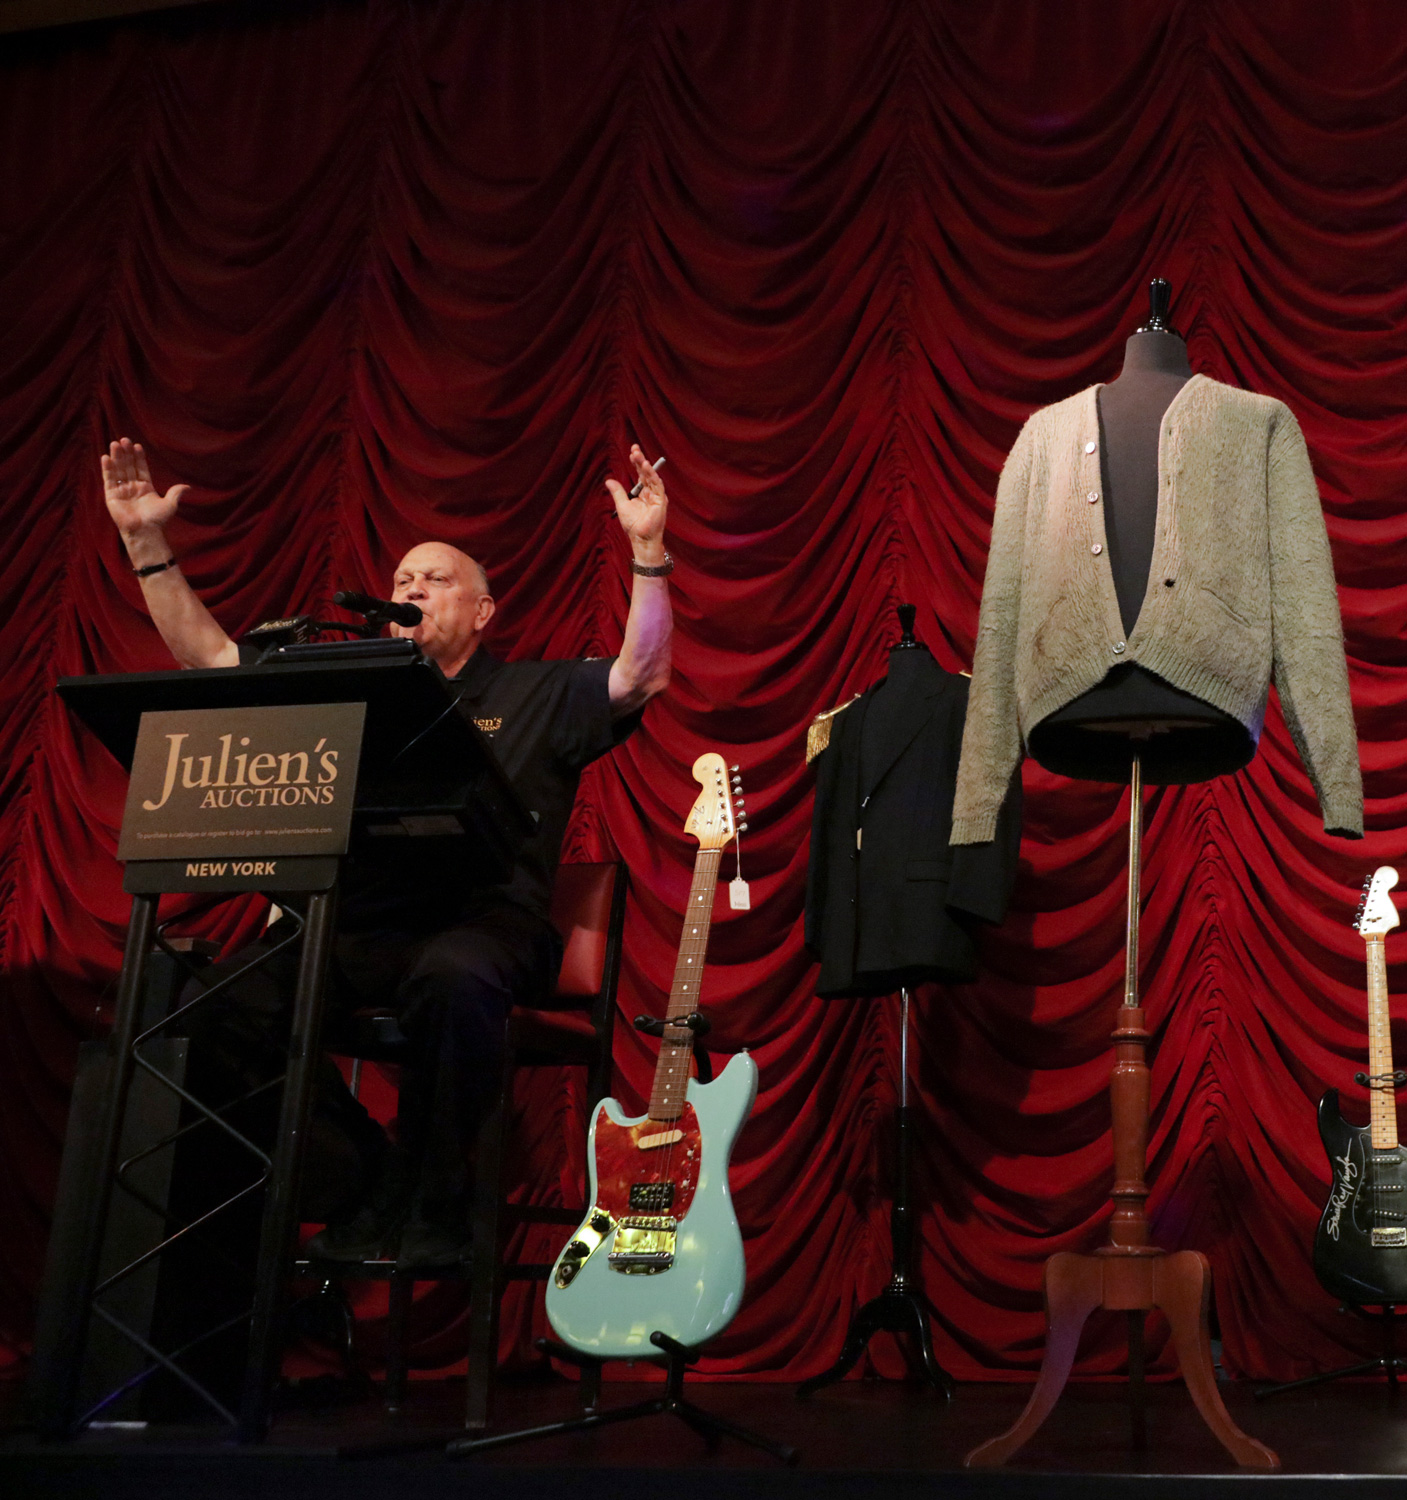 Auctioneer Daniel Kruse of Julien's Auctions and Kurt Cobain's Fender Mustang guitar and MTV Unplugged in New York at Hard Rock Café.